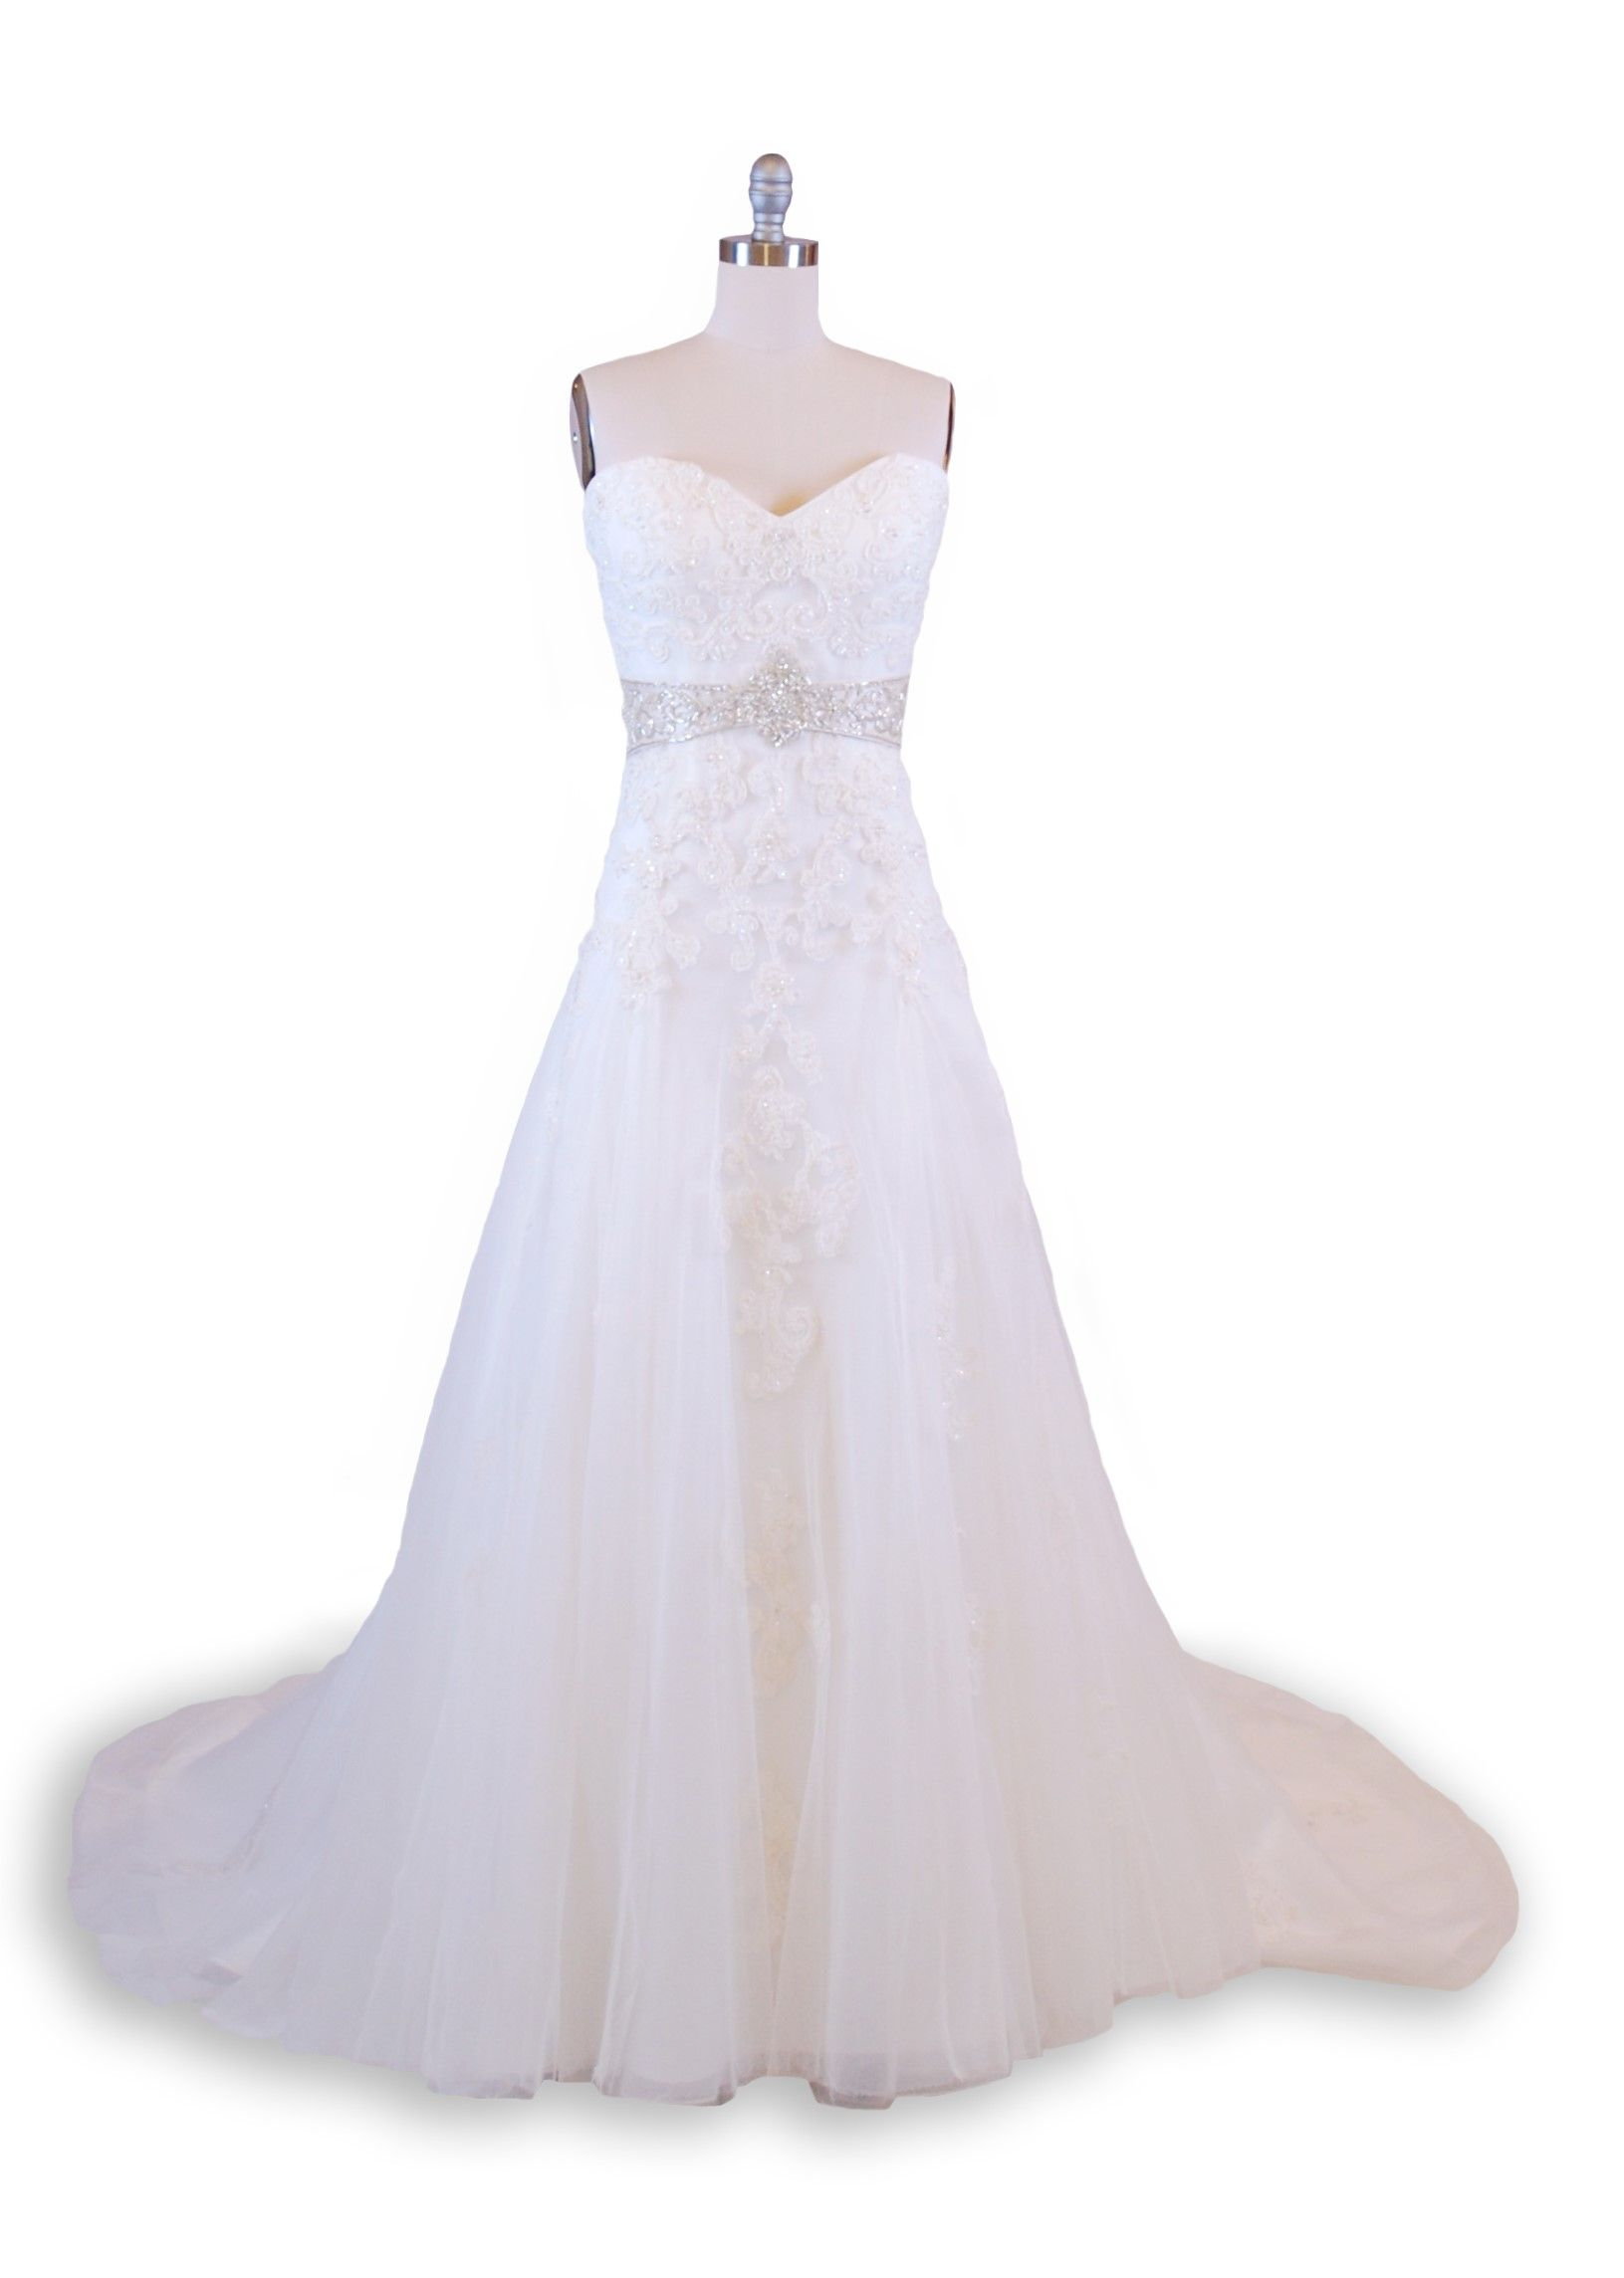 Wedding dresses springfield mo  Casablanca Bridal   Tulle Wedding Dresses  Pinterest